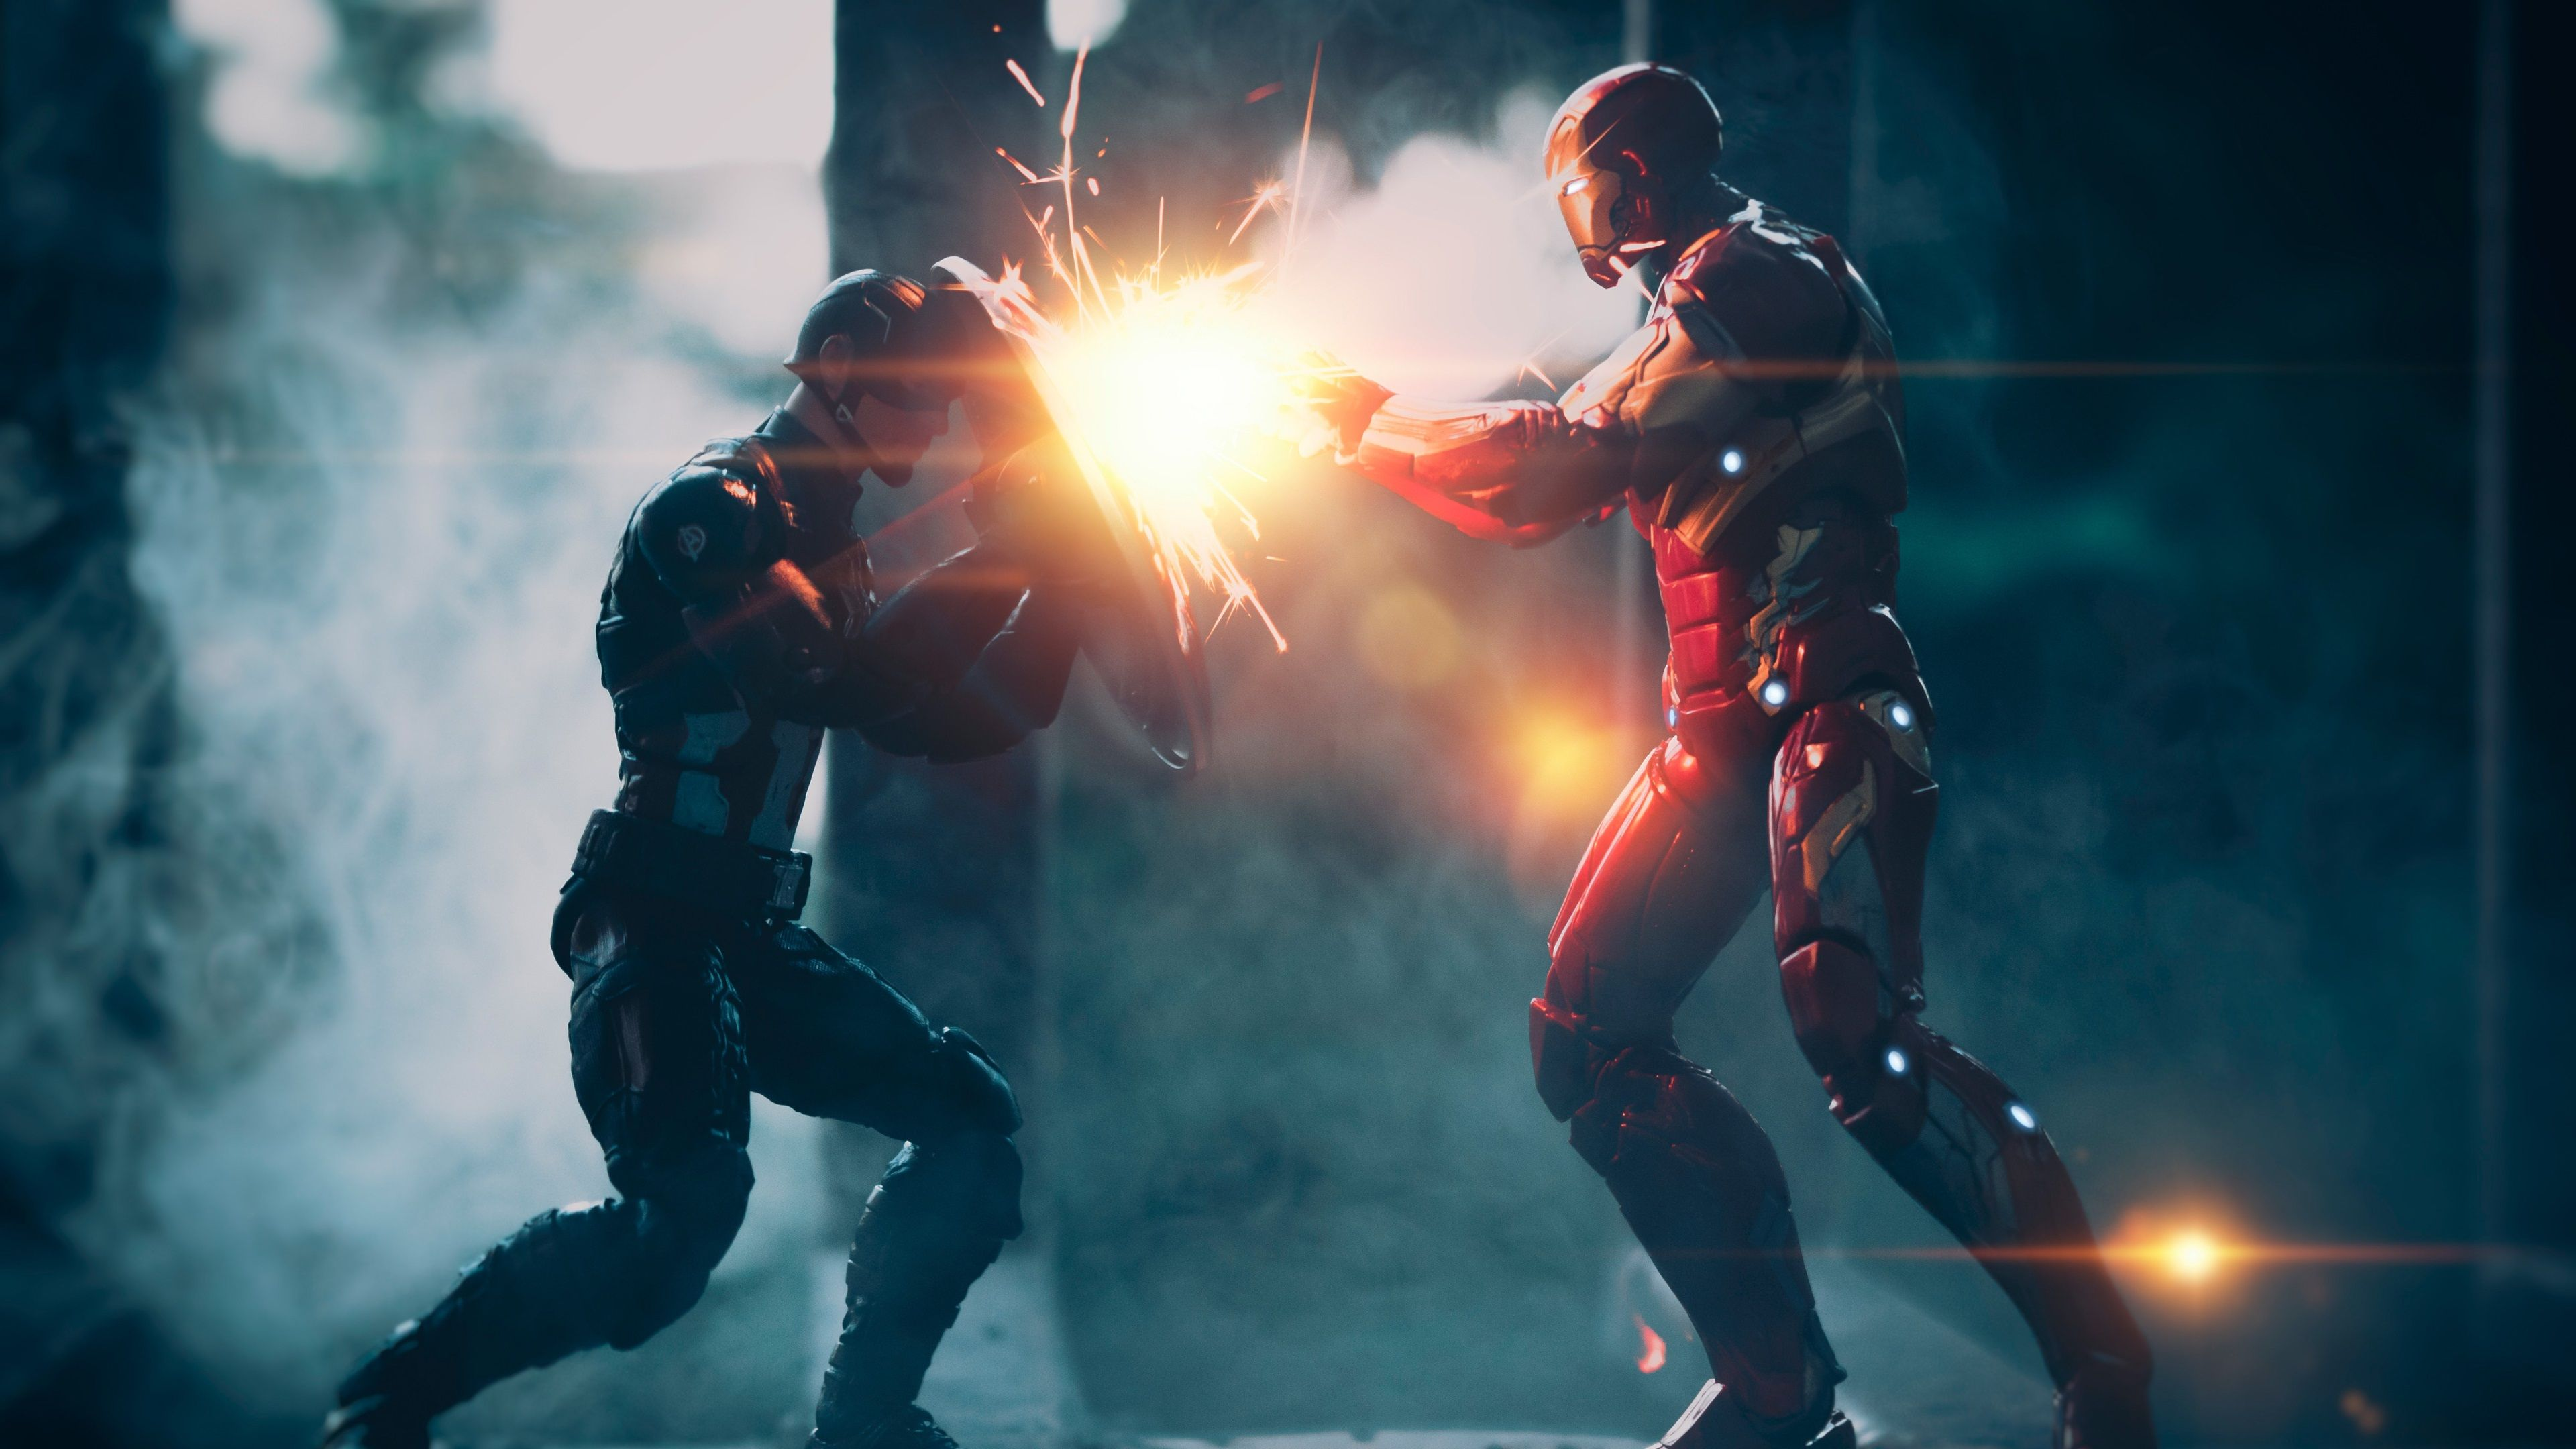 3840x2160 Captain America 4k Free Wide Hd Wallpaper Iron Man Vs Captain America Captain America Wallpaper Iron Man Wallpaper